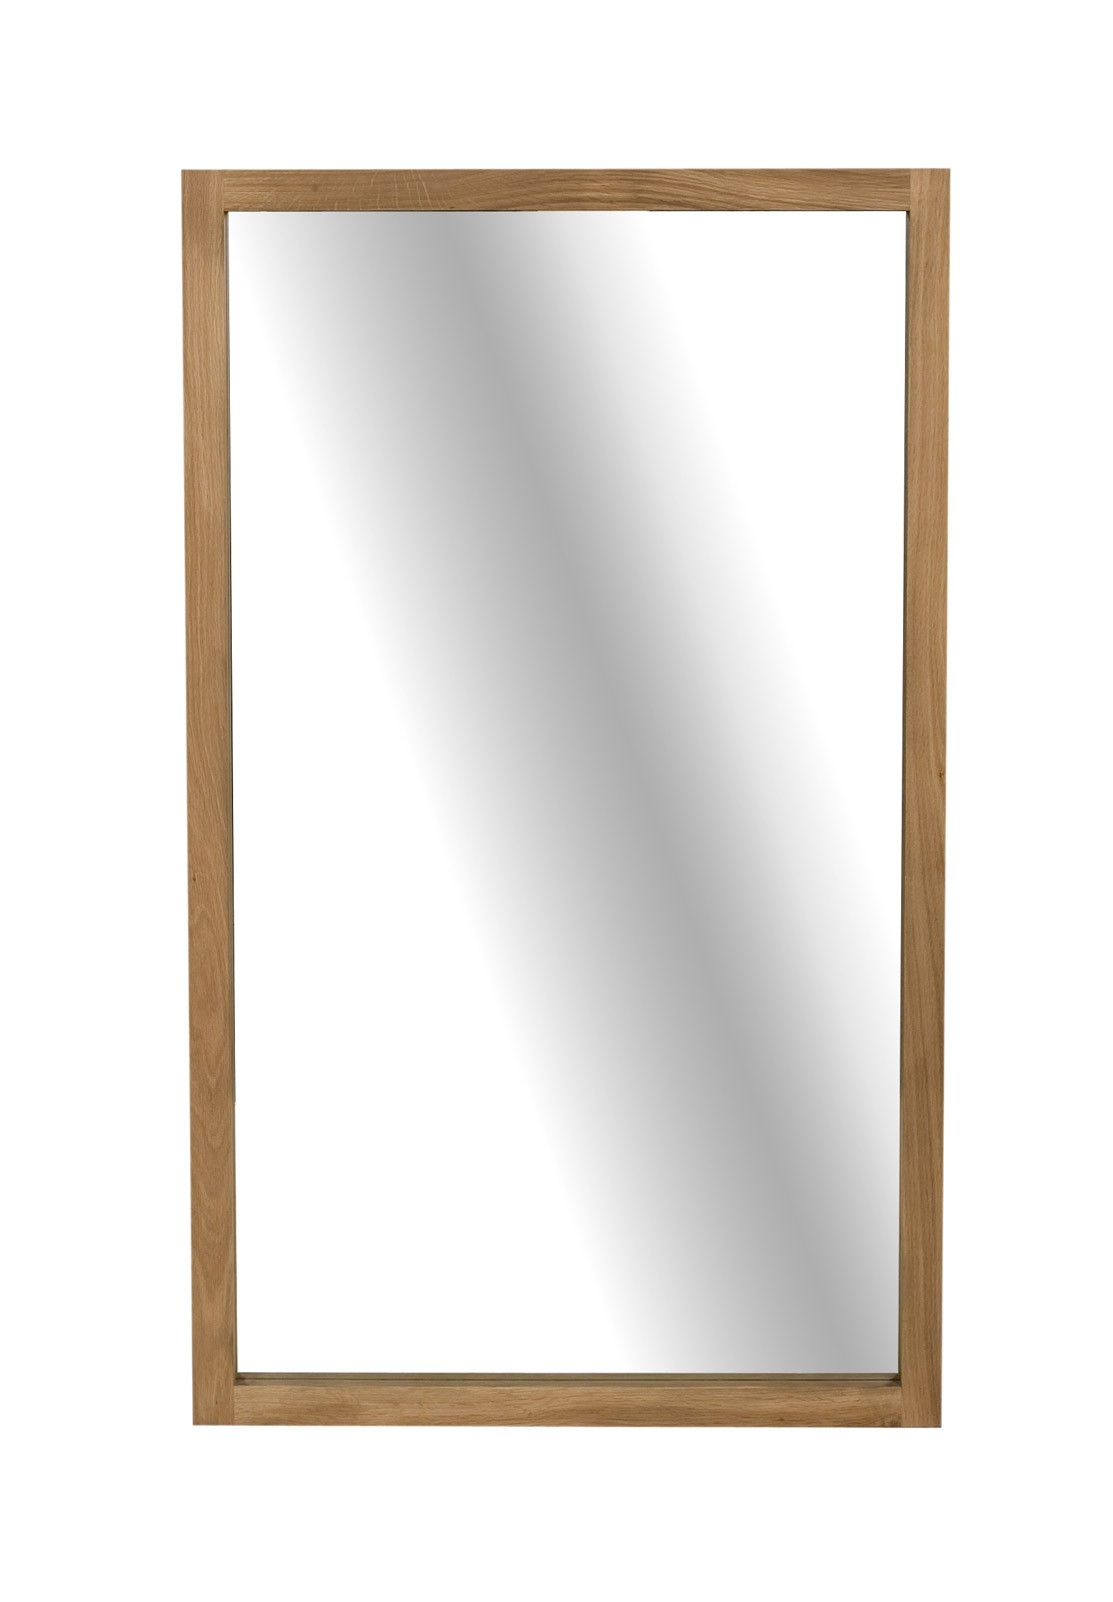 Light frame miroir en ch ne d 39 ethnicraft hauteur 150cm for Miroir 1 metre